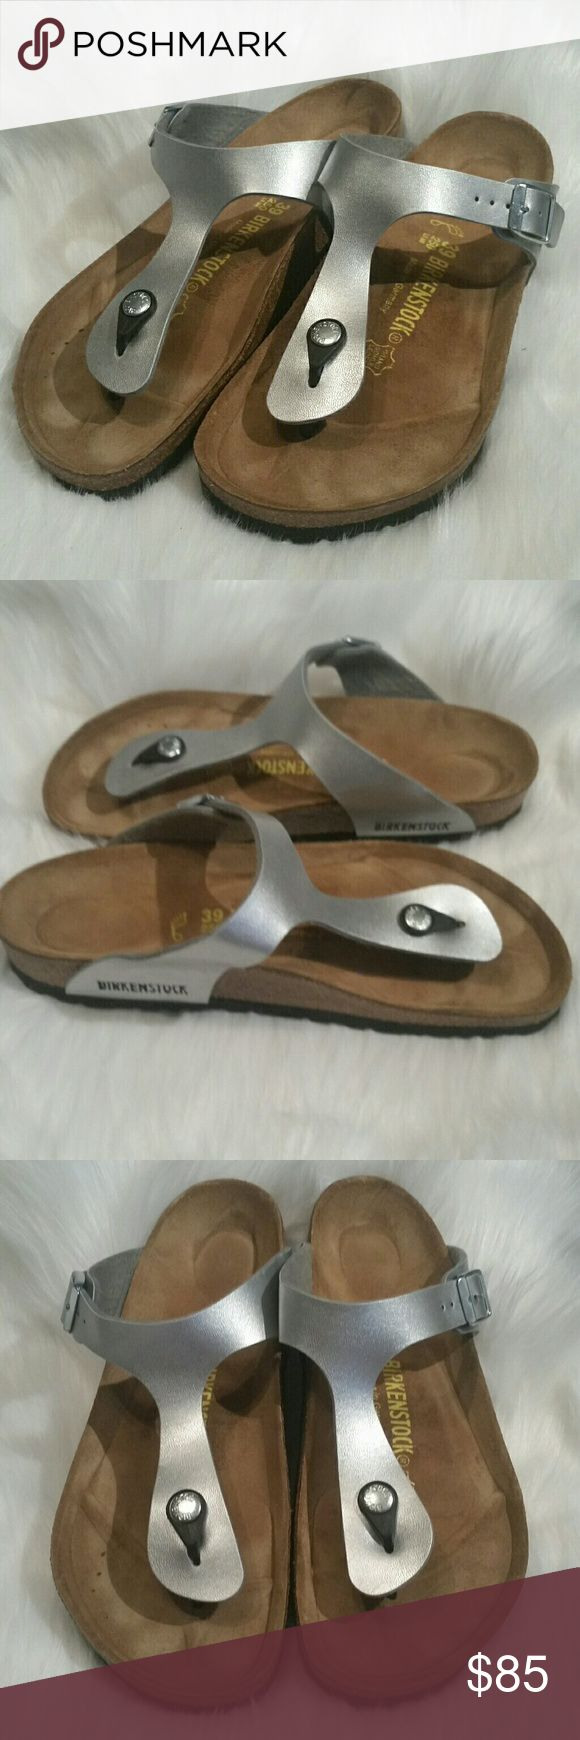 Birkenstock Sz. 39 Gizeh Birko-Flor Thong Sandals Birkenstock Gizeh Birko-Flor Thong Sandals Metallic Silver Size 39 EU ( 8- 8.5) Excellent condition Birkenstock  Shoes Sandals